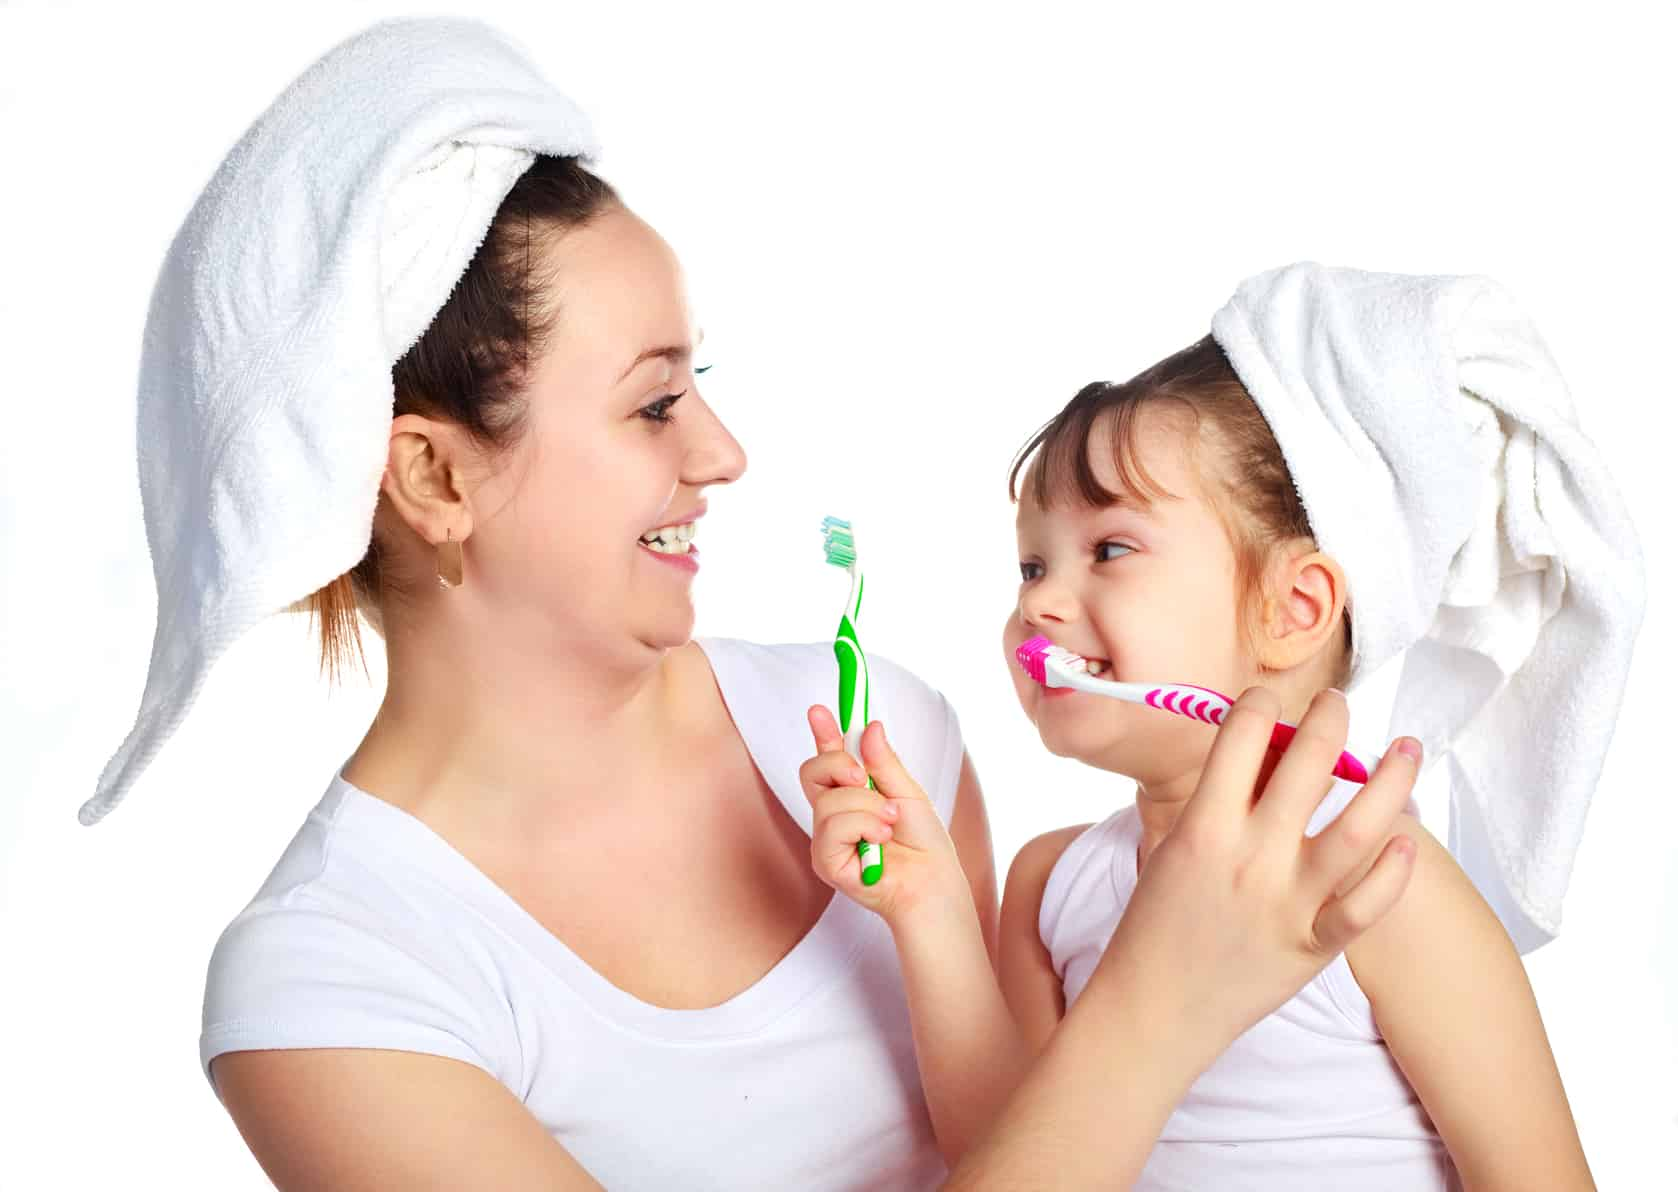 child behavior - Mother and daughter brushing their teeth laughing